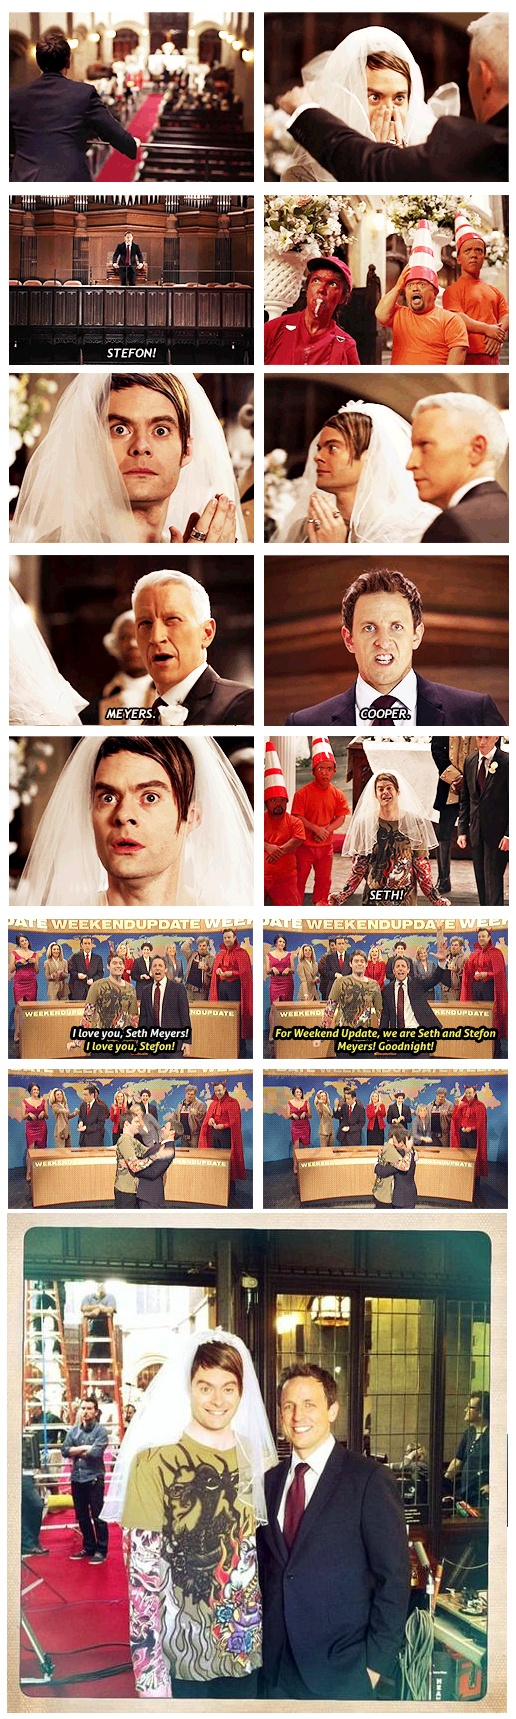 This wedding has EVERYTHING! *The greatest love story ever told* -- Seth Meyers and Stefon, #SNL #Epic #Bill #Hader